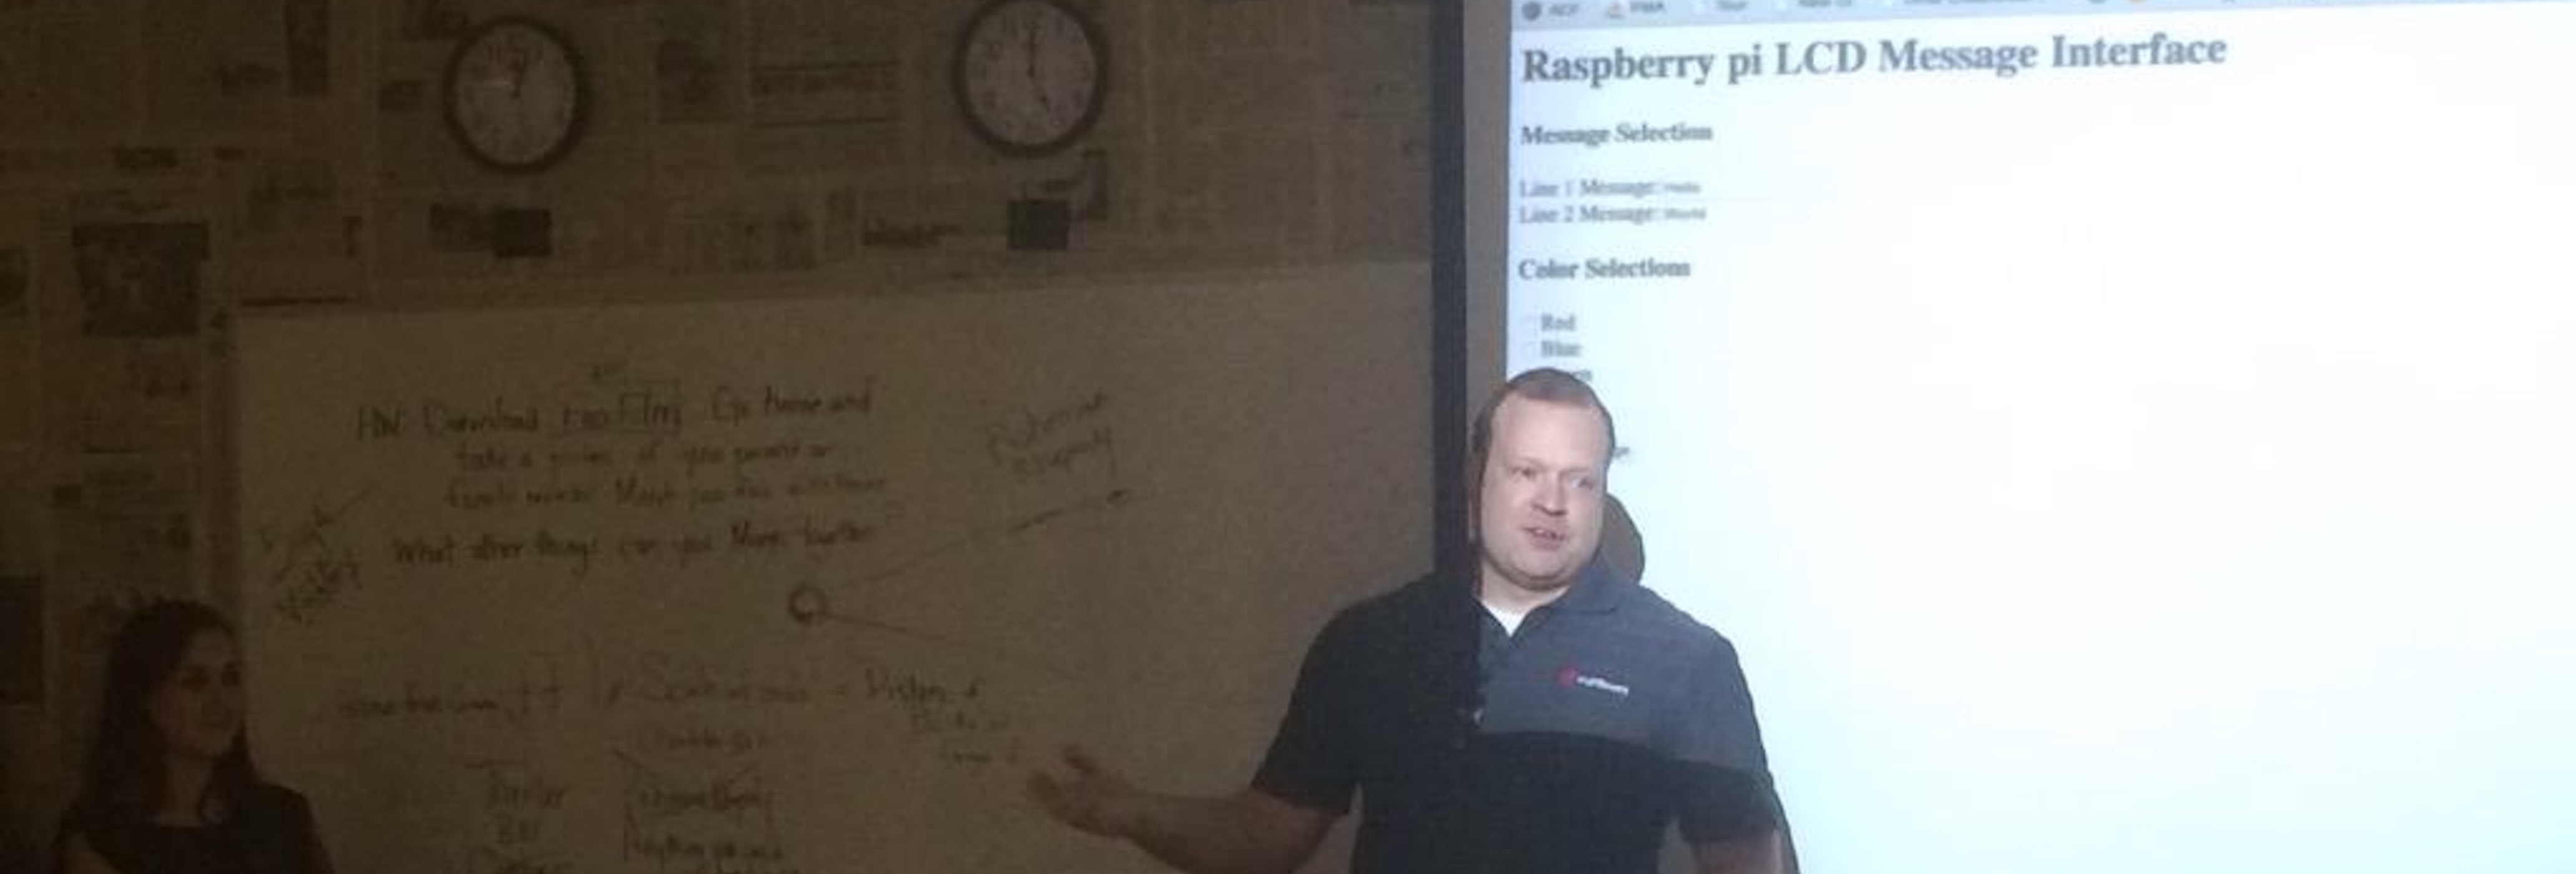 Chris Kreider presenting simple programs using the Raspberry Pi during STEM week at a local academy